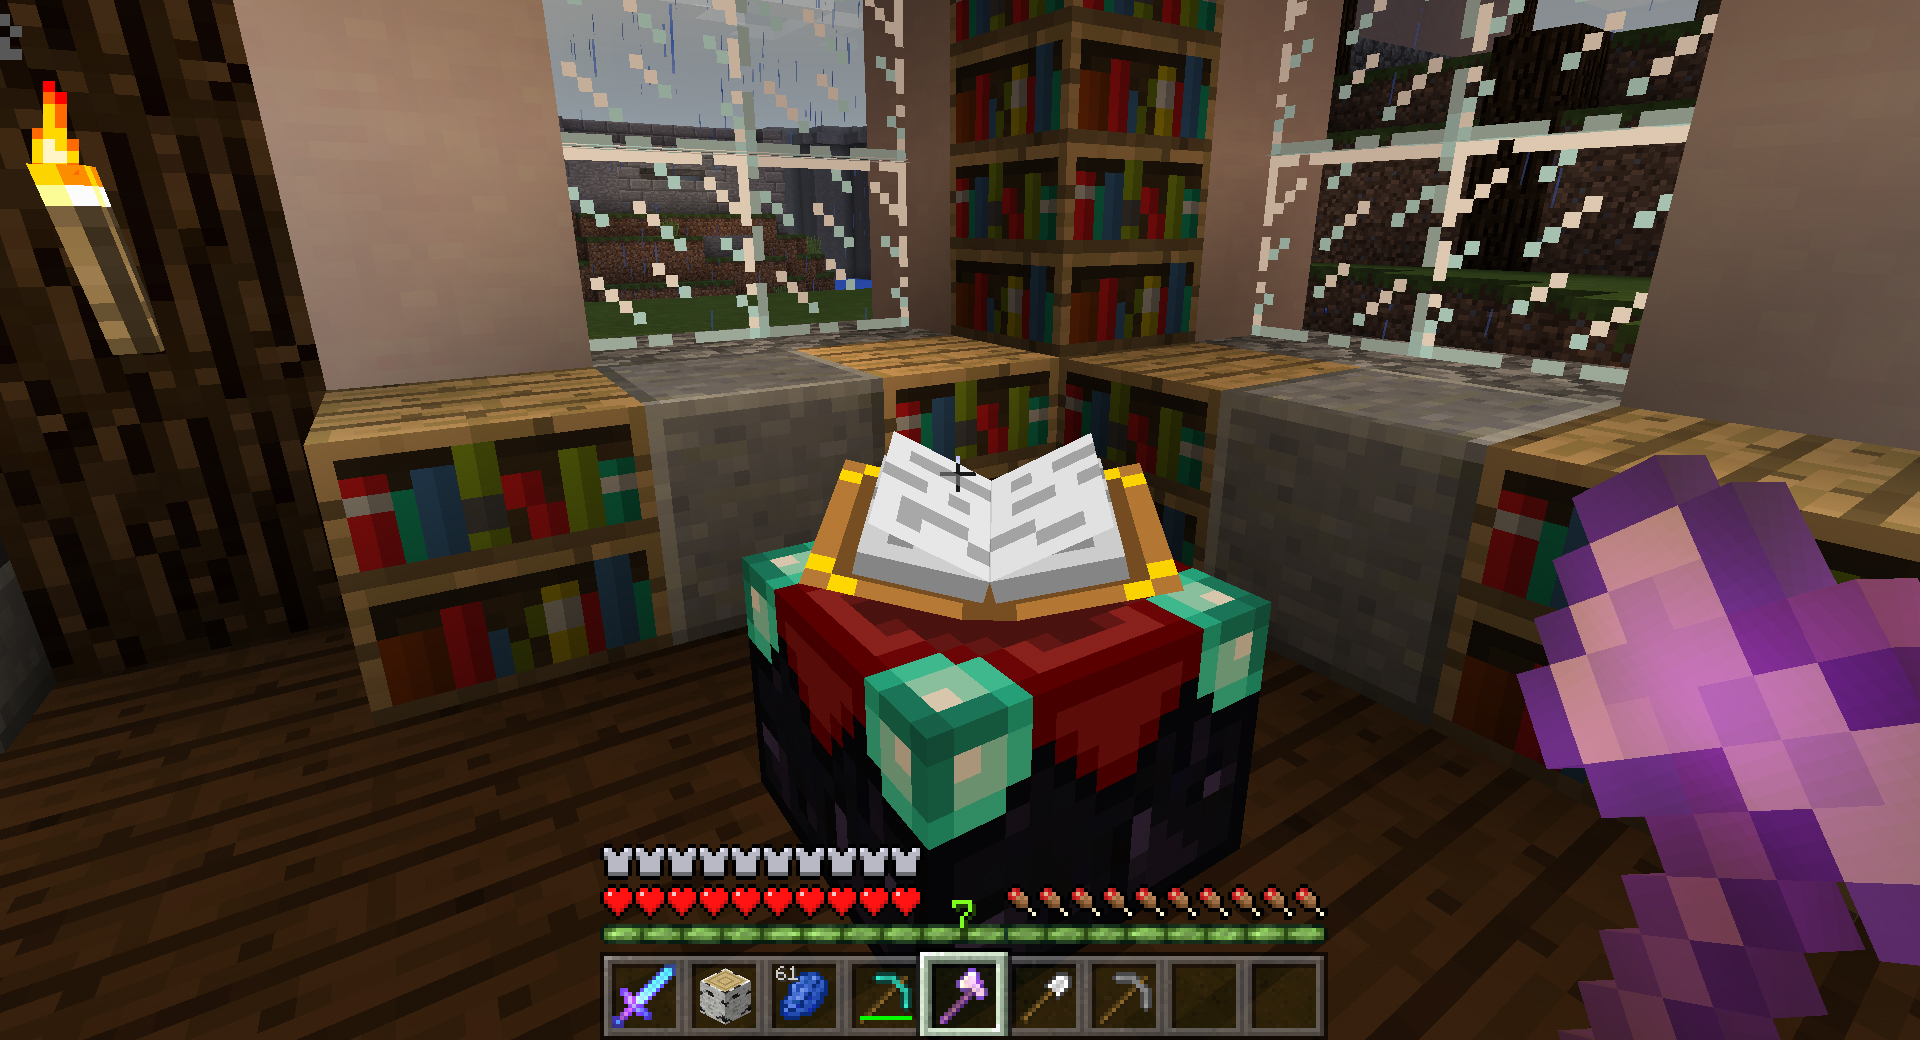 how to get the full version of minecraft windows 10